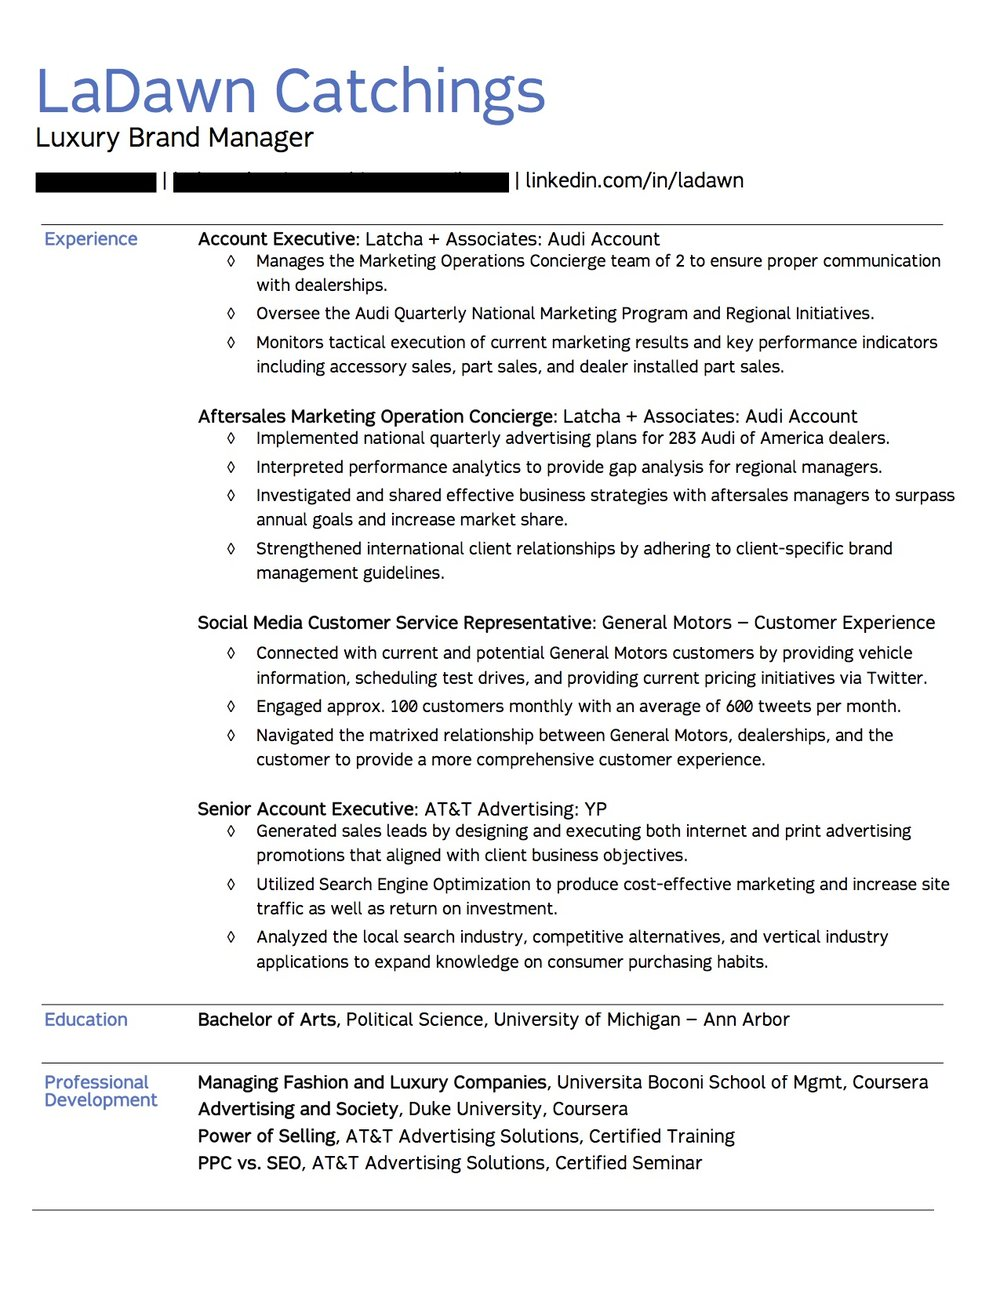 Client Resume #3. Click to enlarge.